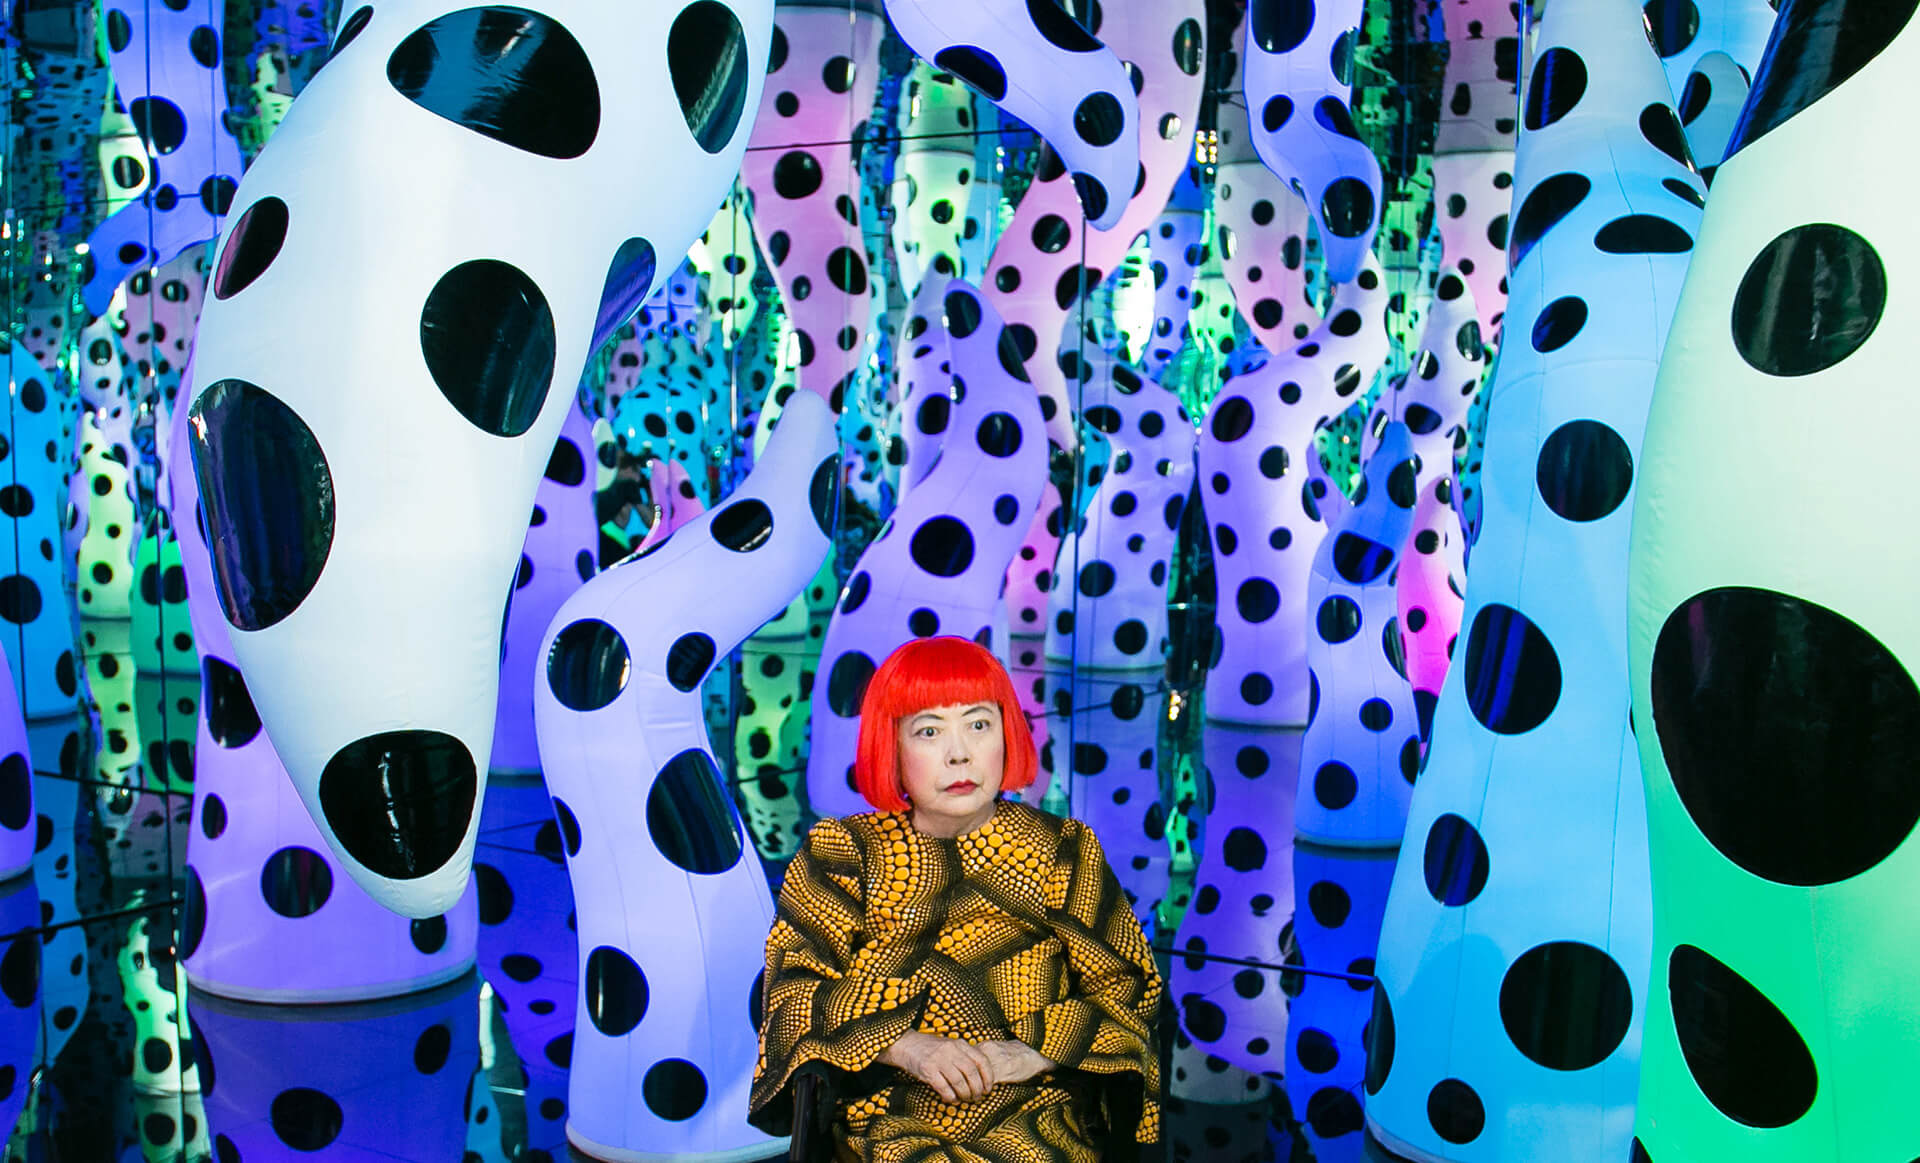 Yayoi Kusama pictured with her work 'LOVE IS CALLING', 2013 during her solo exhibition 'I Who Have Arrived In Heaven' at David Zwirner, New York Courtesy of David Zwirner, New York; Ota Fine Arts, Tokyo/Singapore/Shanghai; Victoria Miro, London/Venice | STIRworld